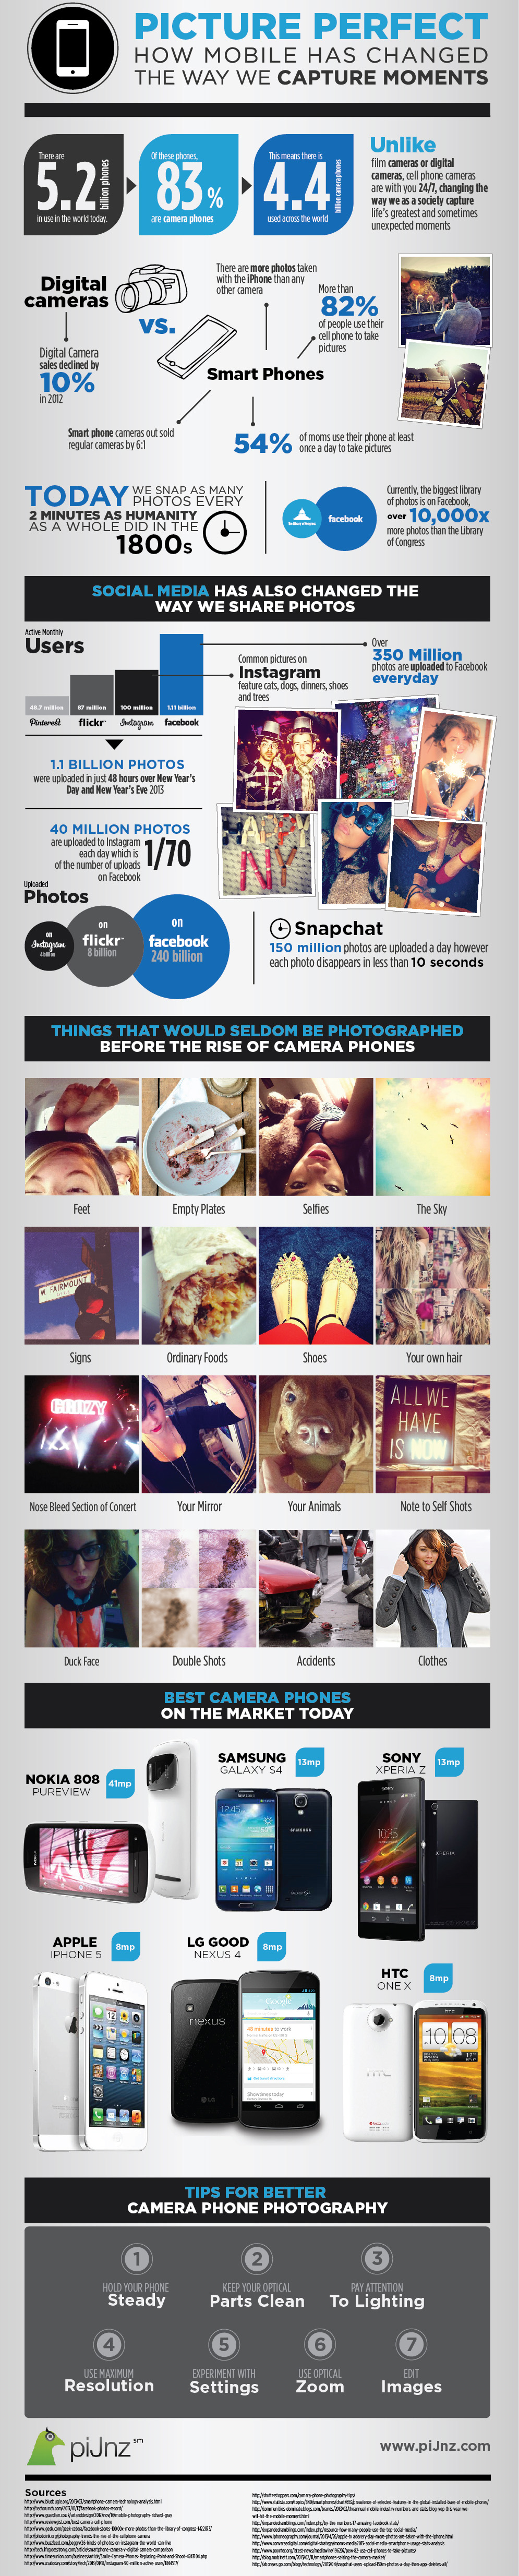 How Mobile Has Changed the Way We Capture Moments